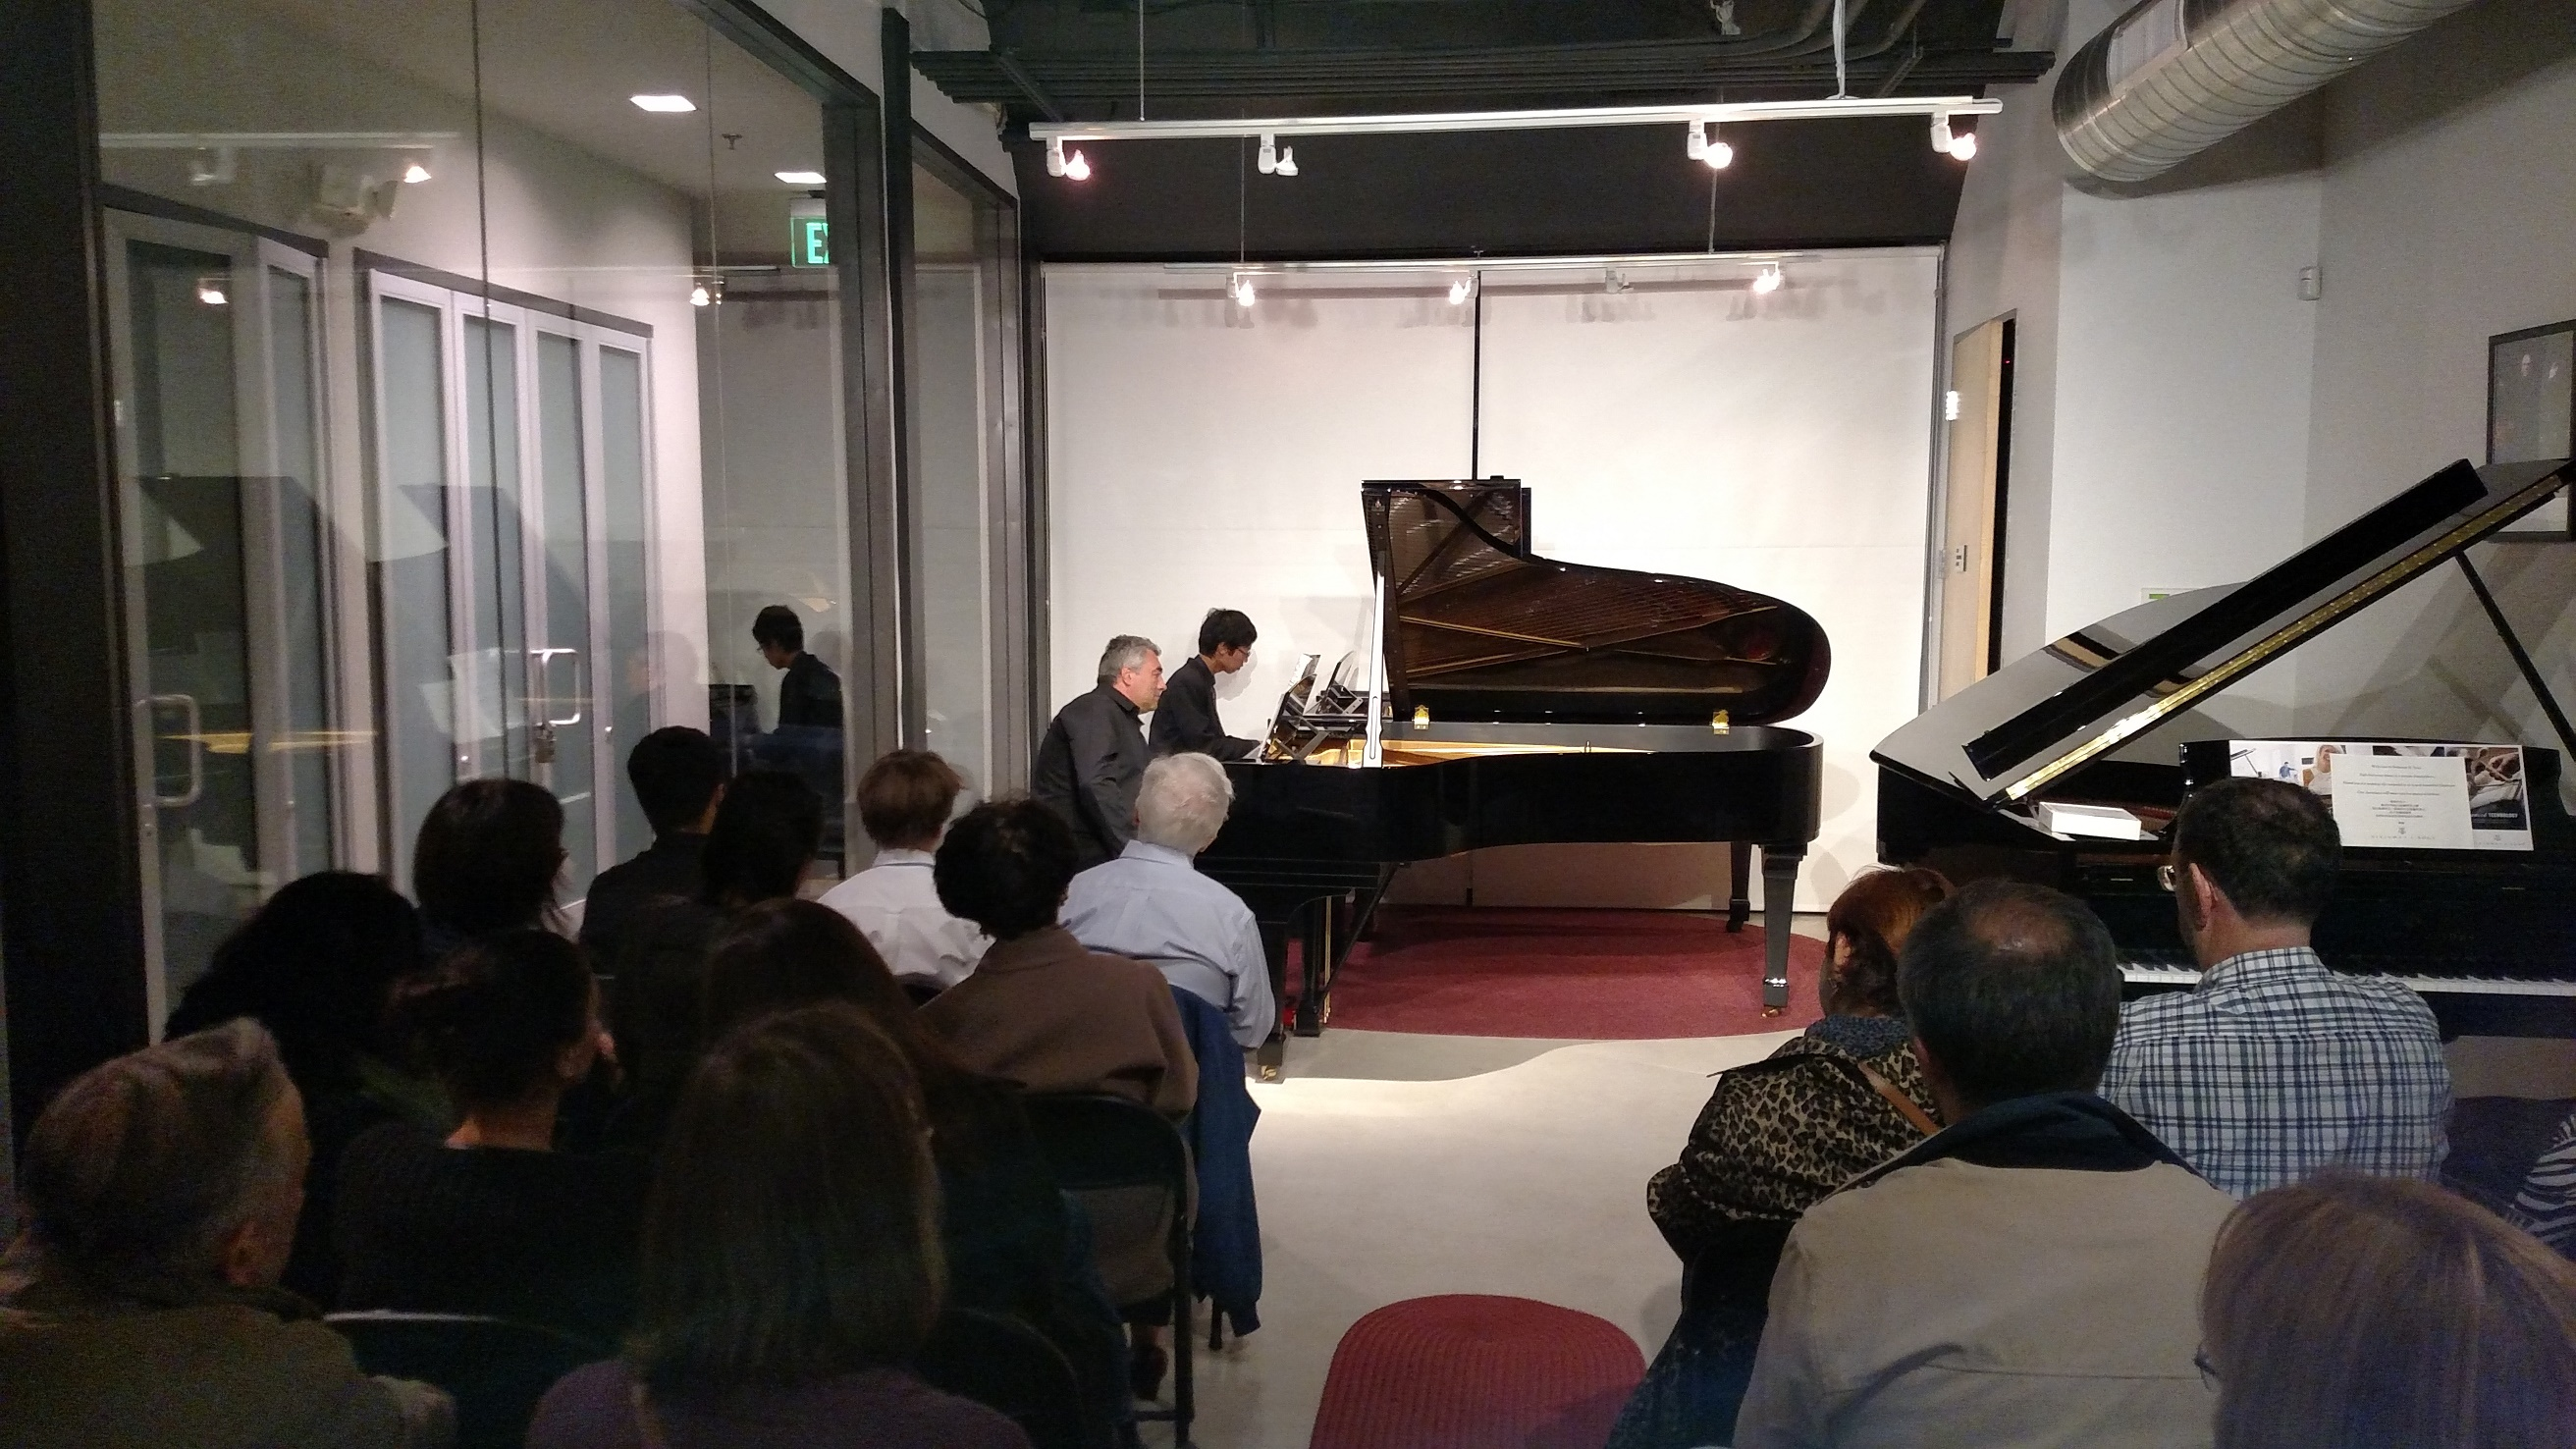 master-class-with-tchaikovsky-competition-laureate-vadim-rudenko-organized-by-steinway-society_28339187941_o